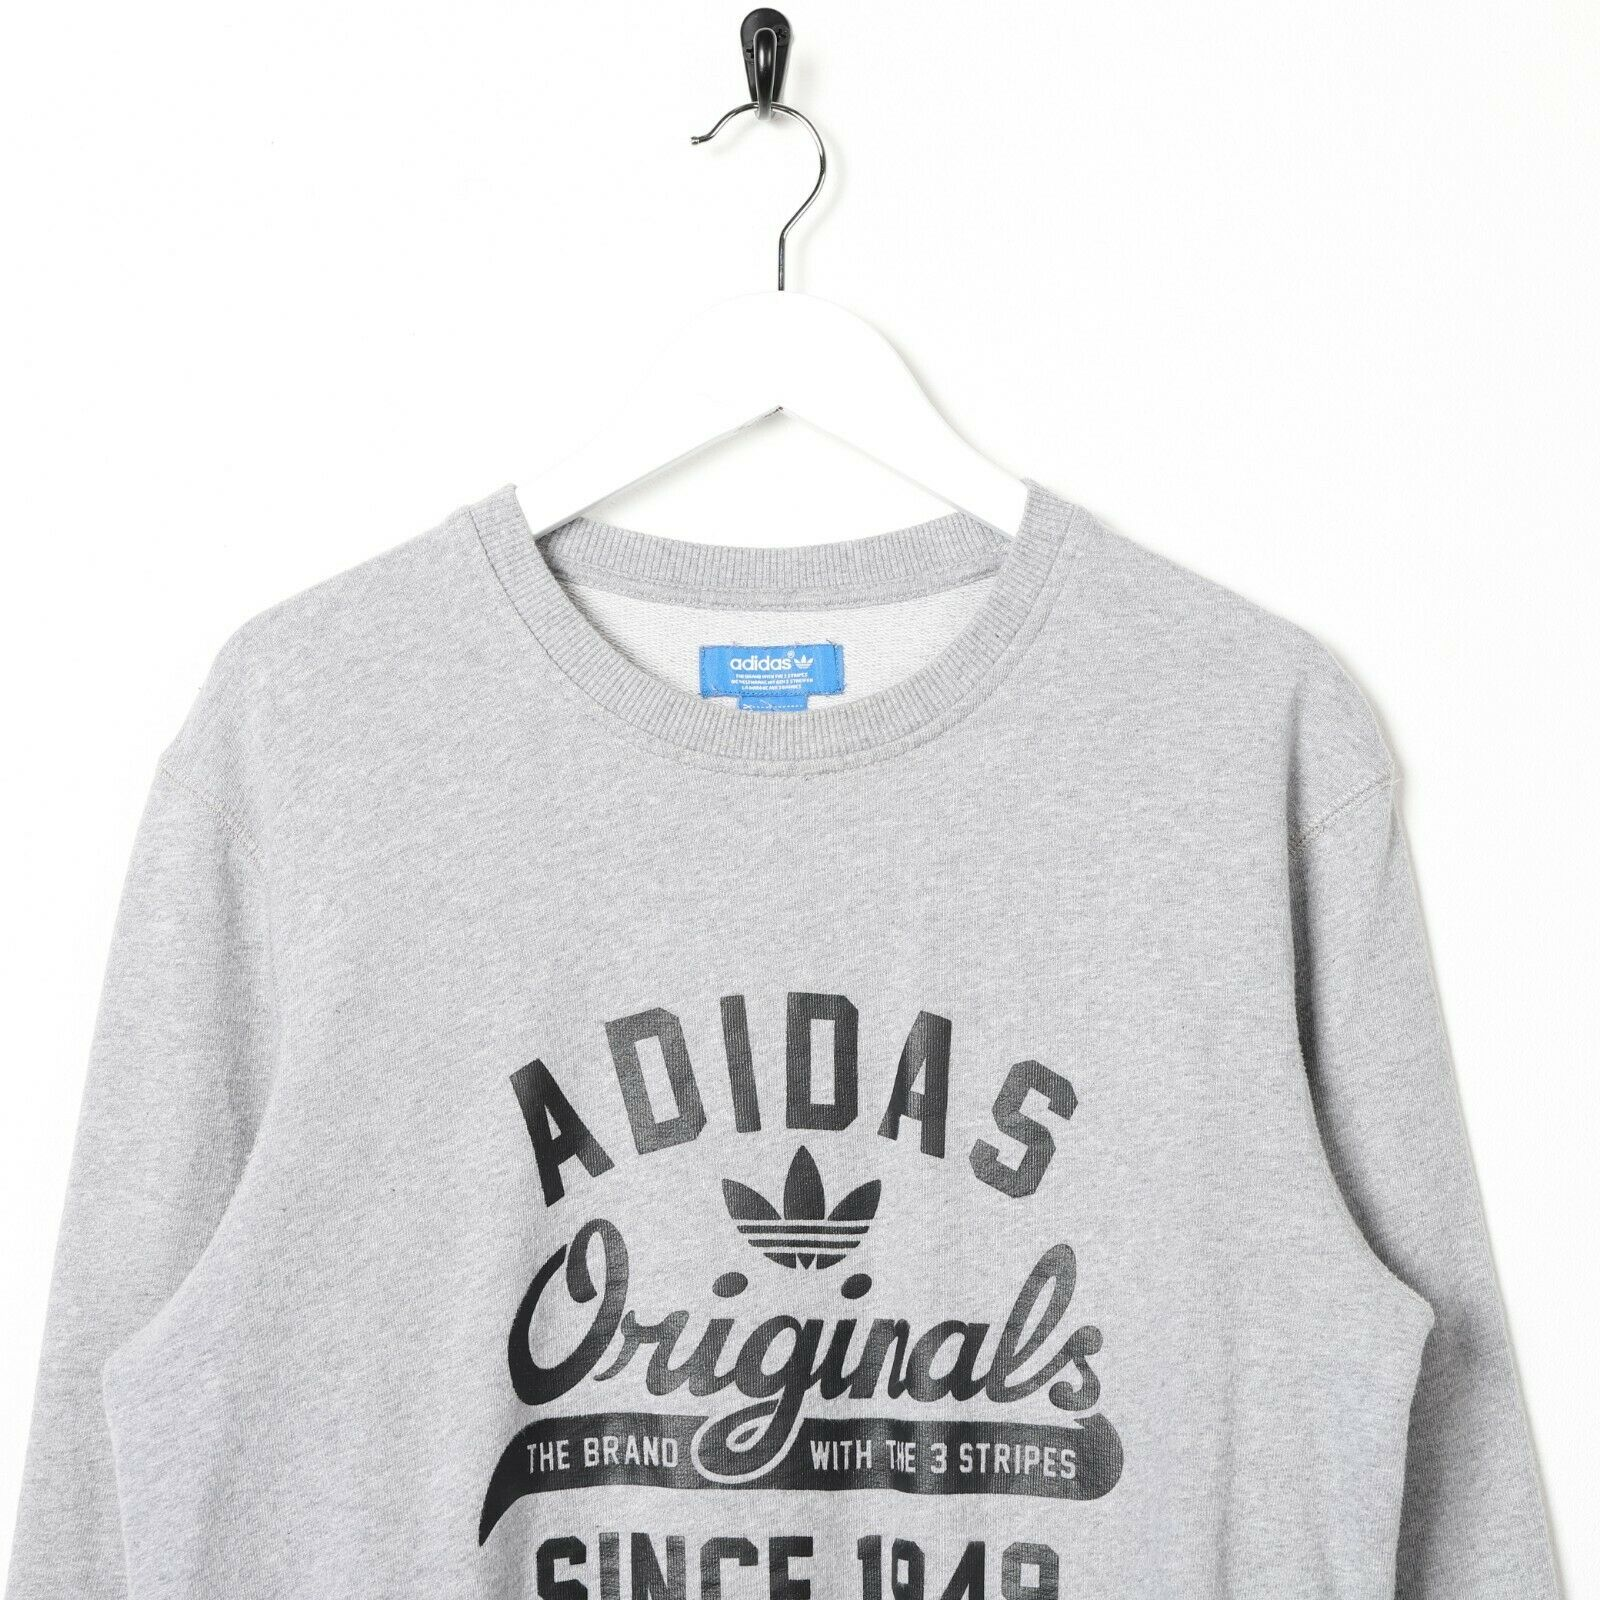 Vintage ADIDAS ORIGINALS Graphic Logo Sweatshirt Jumper Grey Small S